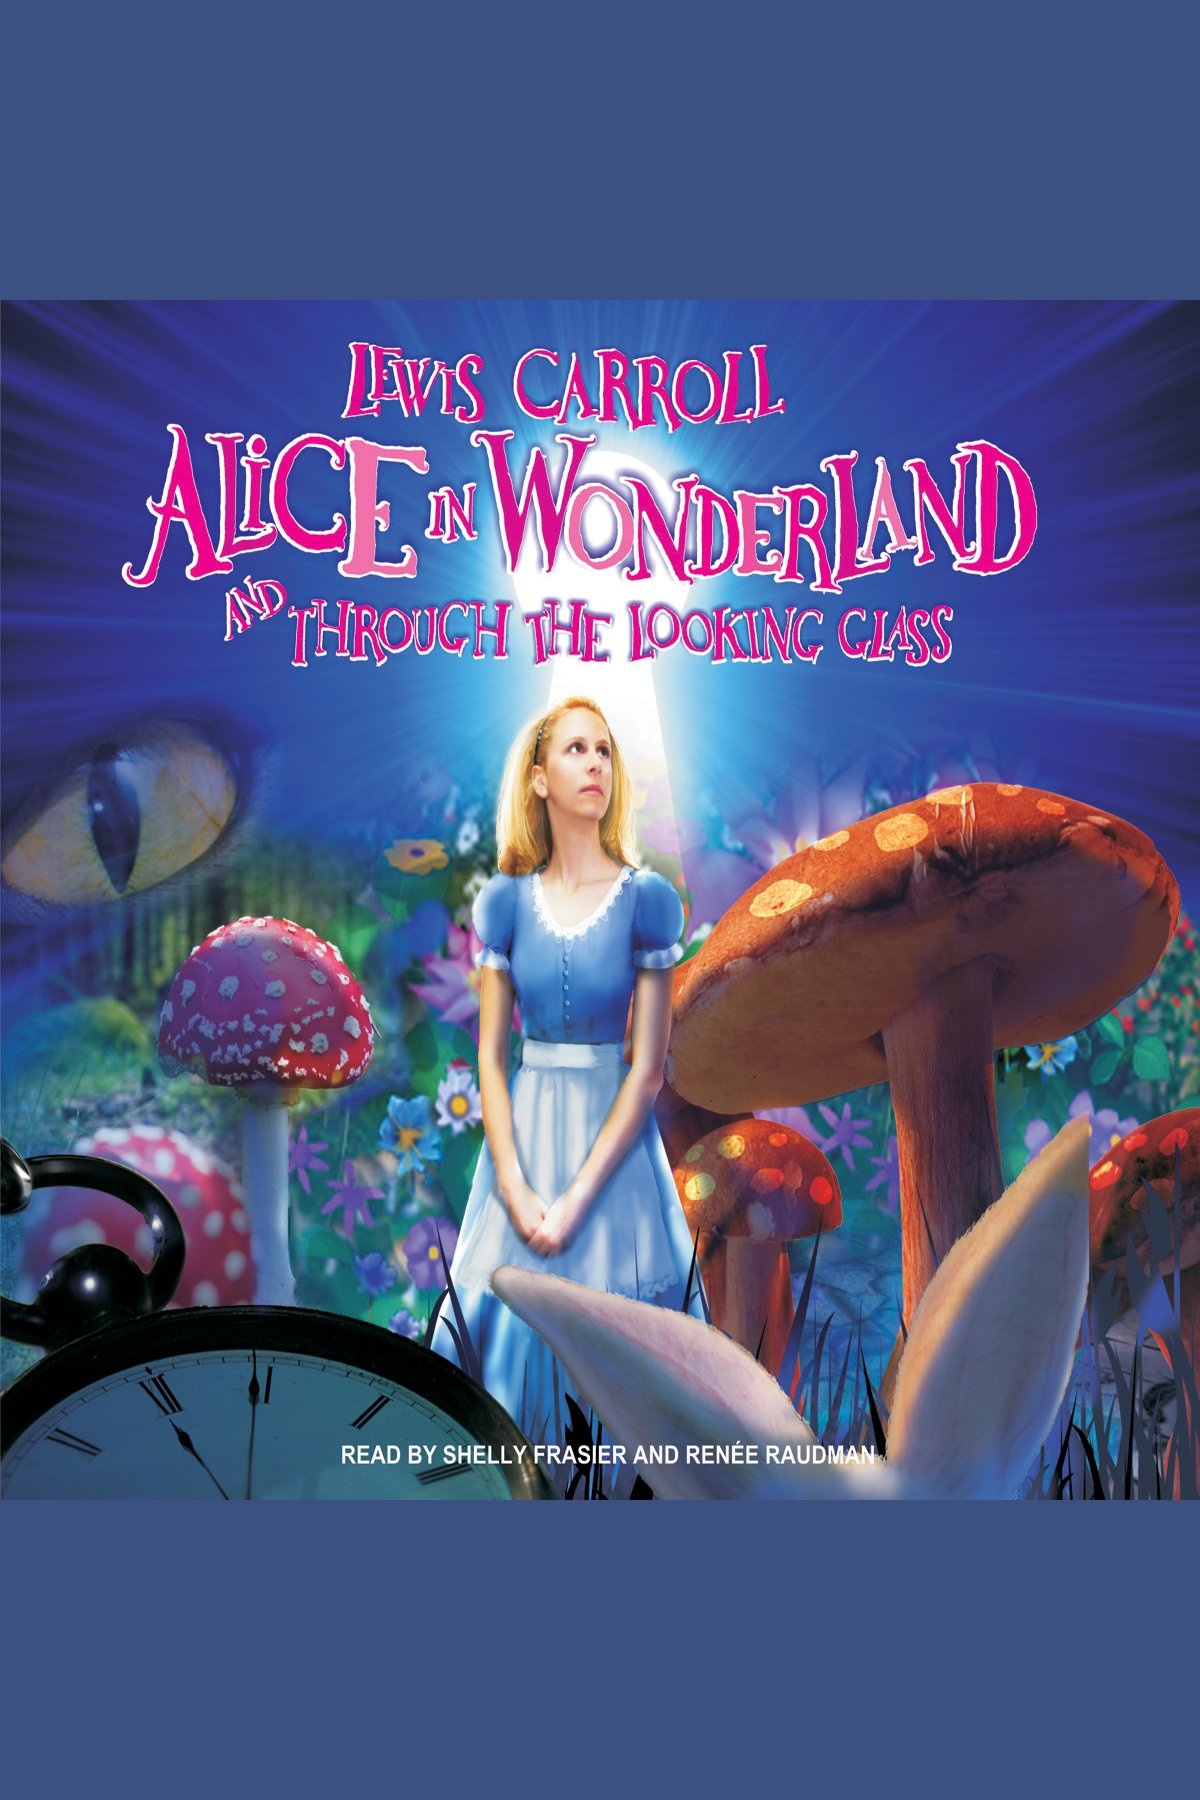 Alice in Wonderland and through the looking glass cover image